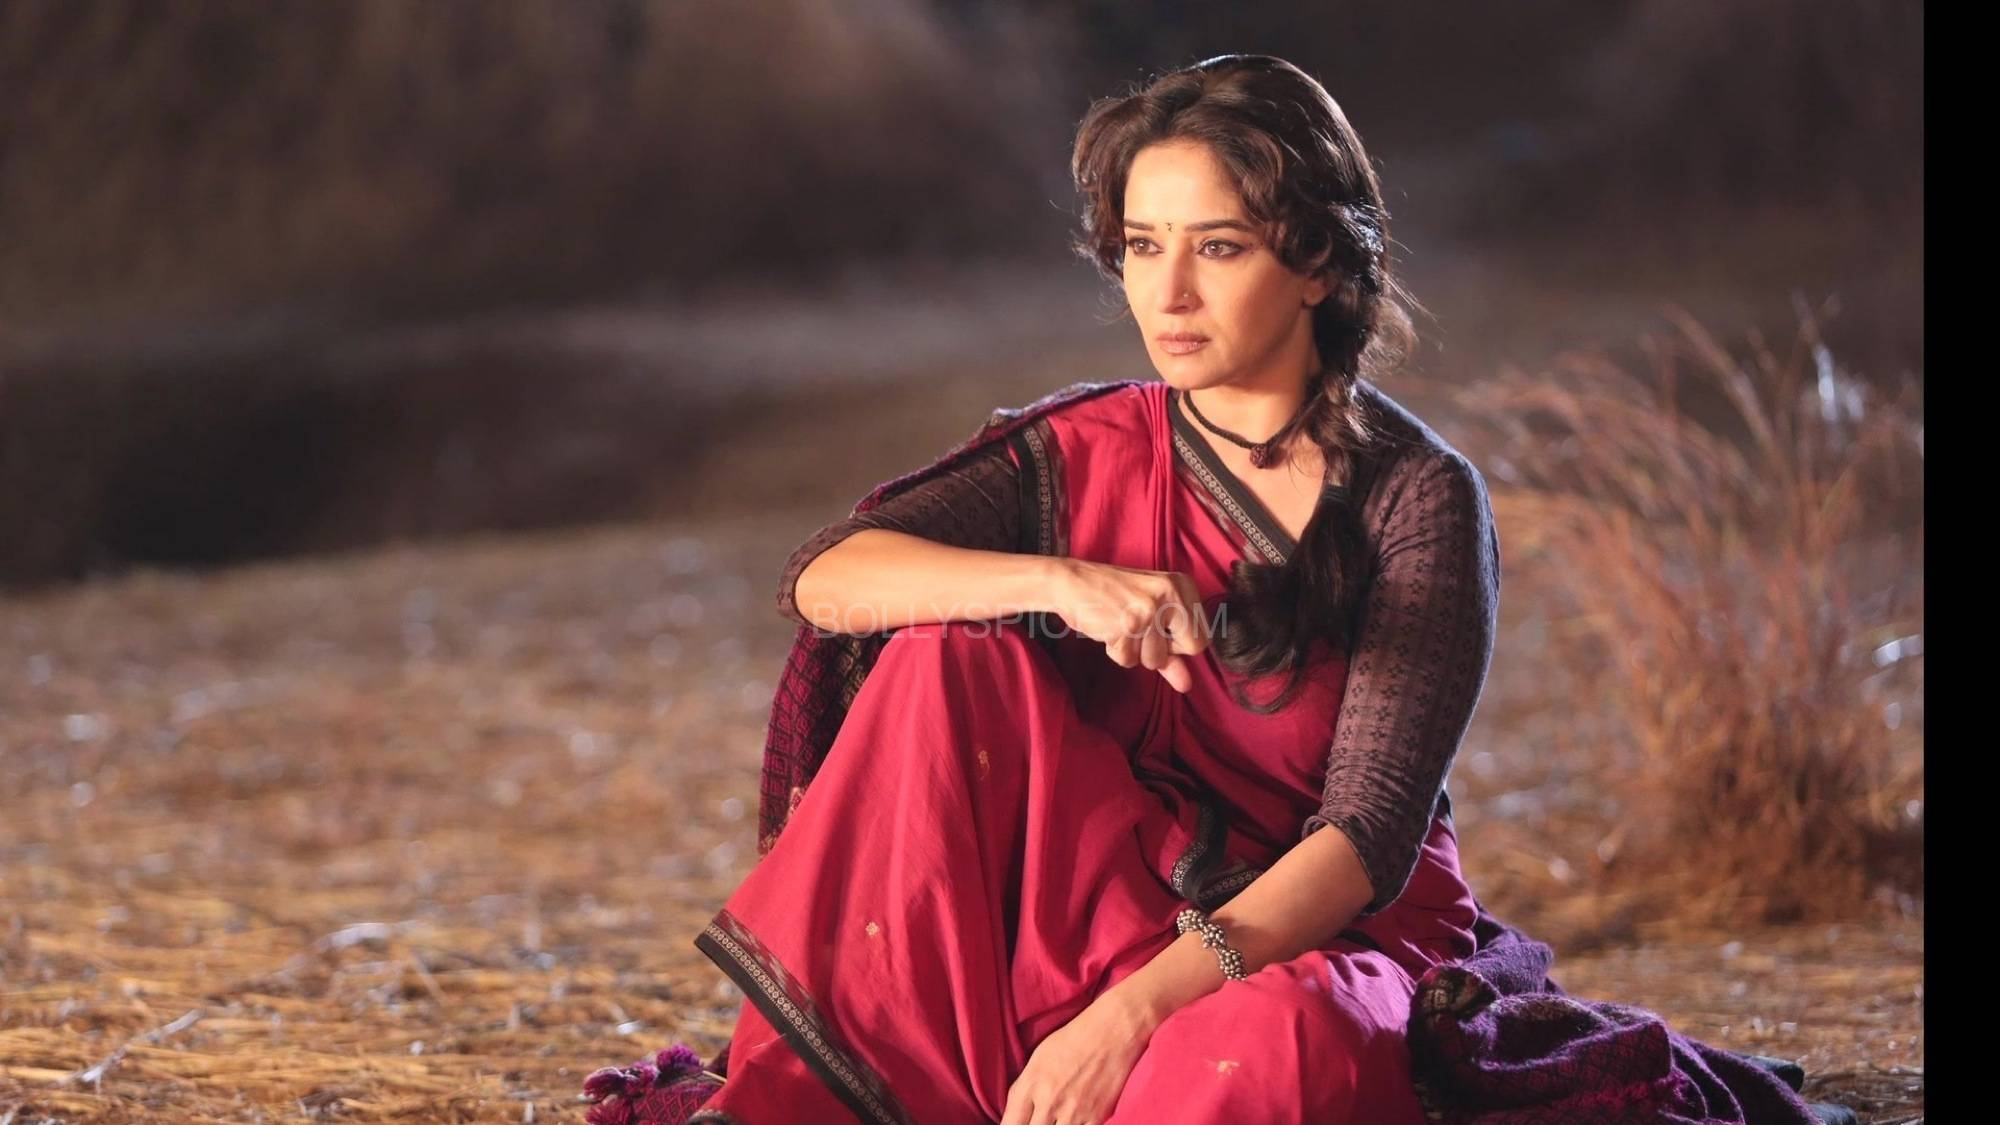 dheemidheemigulaabgang4 The magic of Madhuri in Dheemi Dheemi   Gulaab Gang